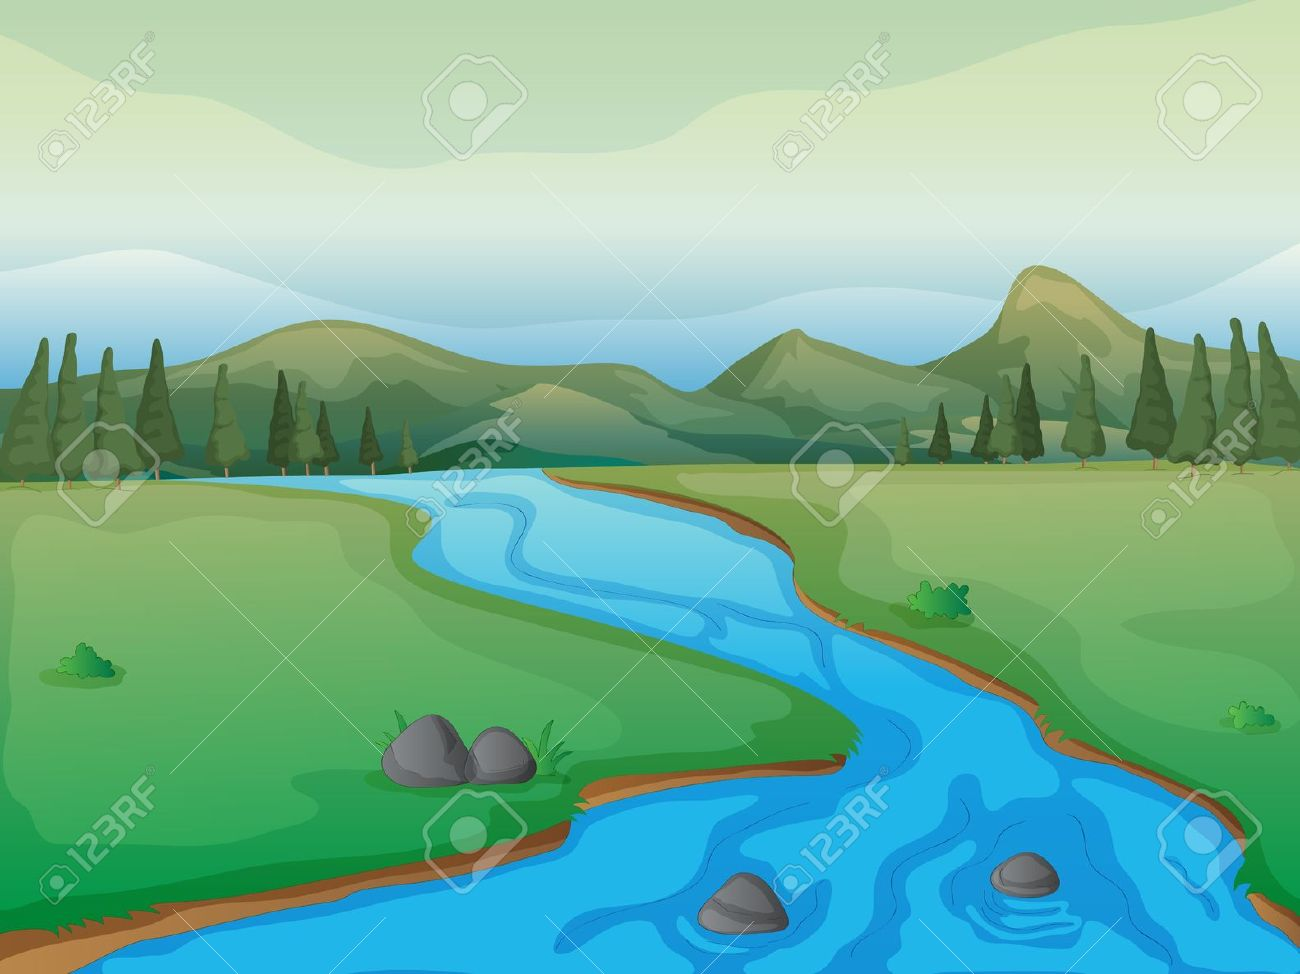 Animated river clipart.